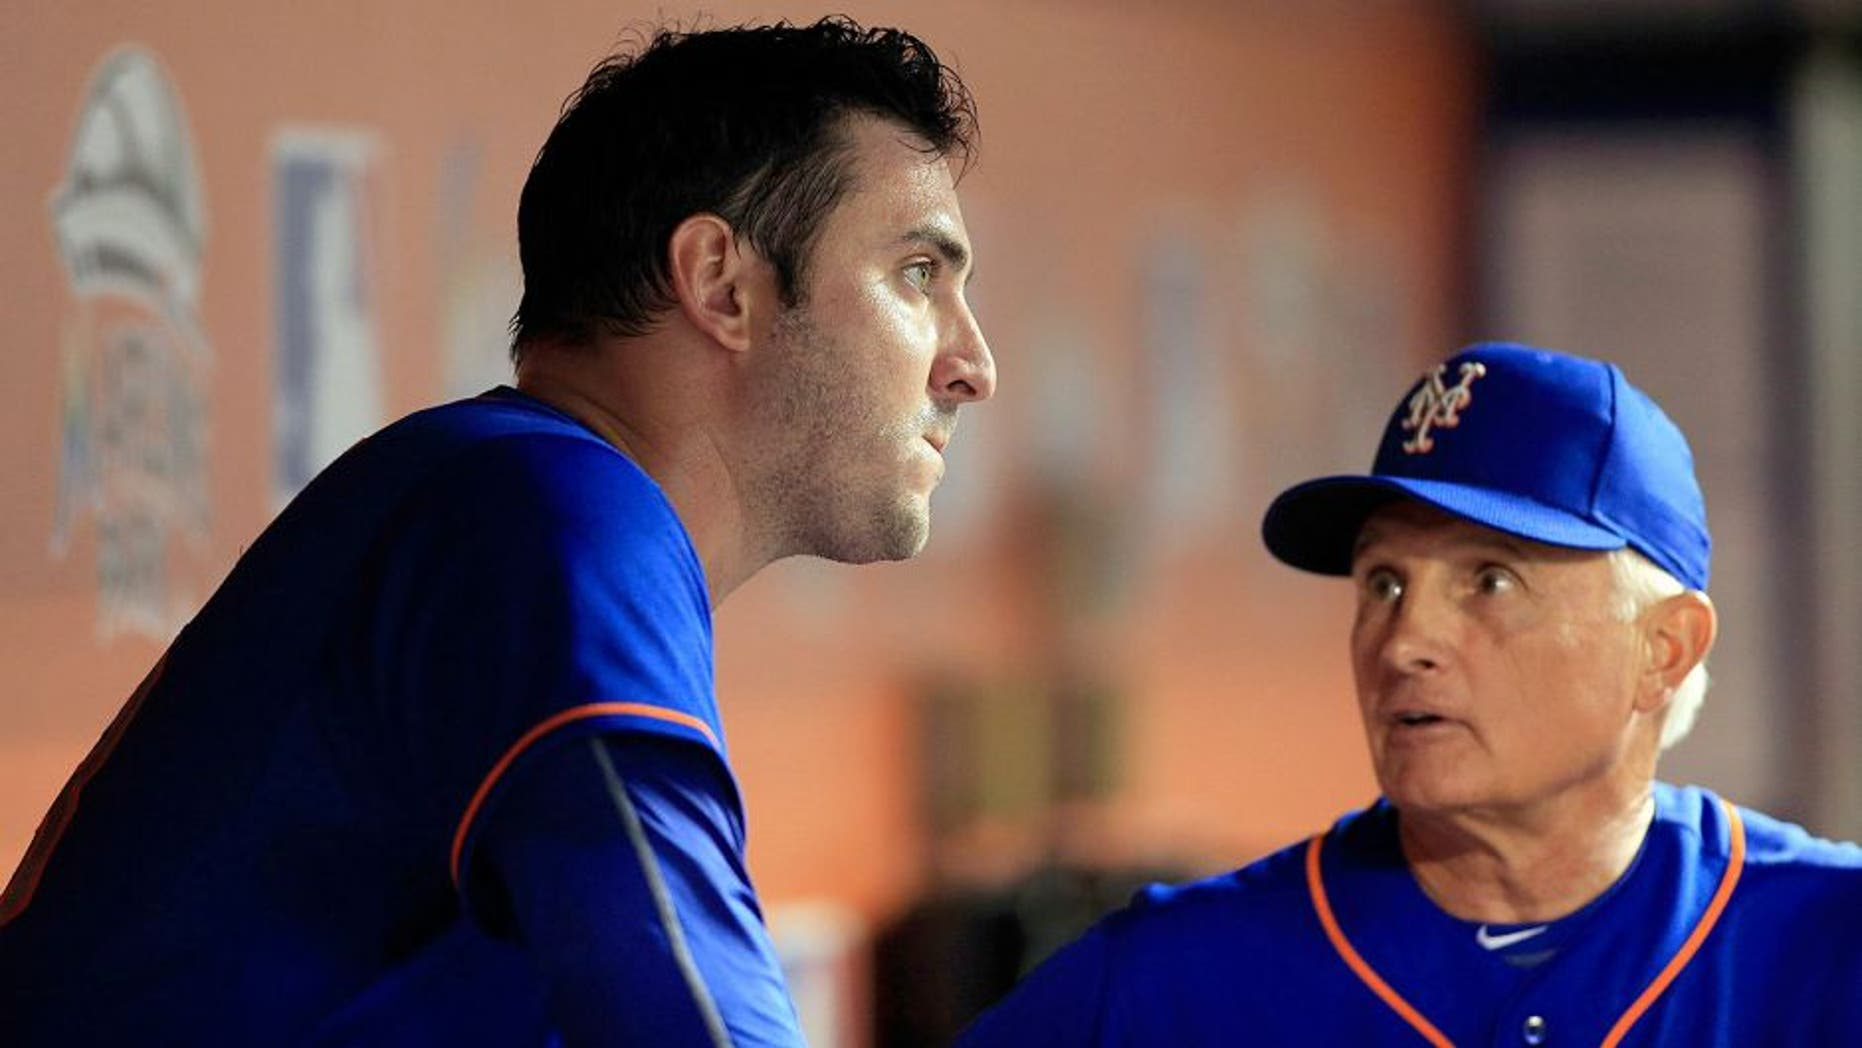 Aug 5, 2015; Miami, FL, USA; New York Mets manager Terry Collins (right) talks with starting pitcher Matt Harvey in the eighth inning of a game against the Miami Marlins at Marlins Park. The Mets won 8-6. Mandatory Credit: Robert Mayer-USA TODAY Sports